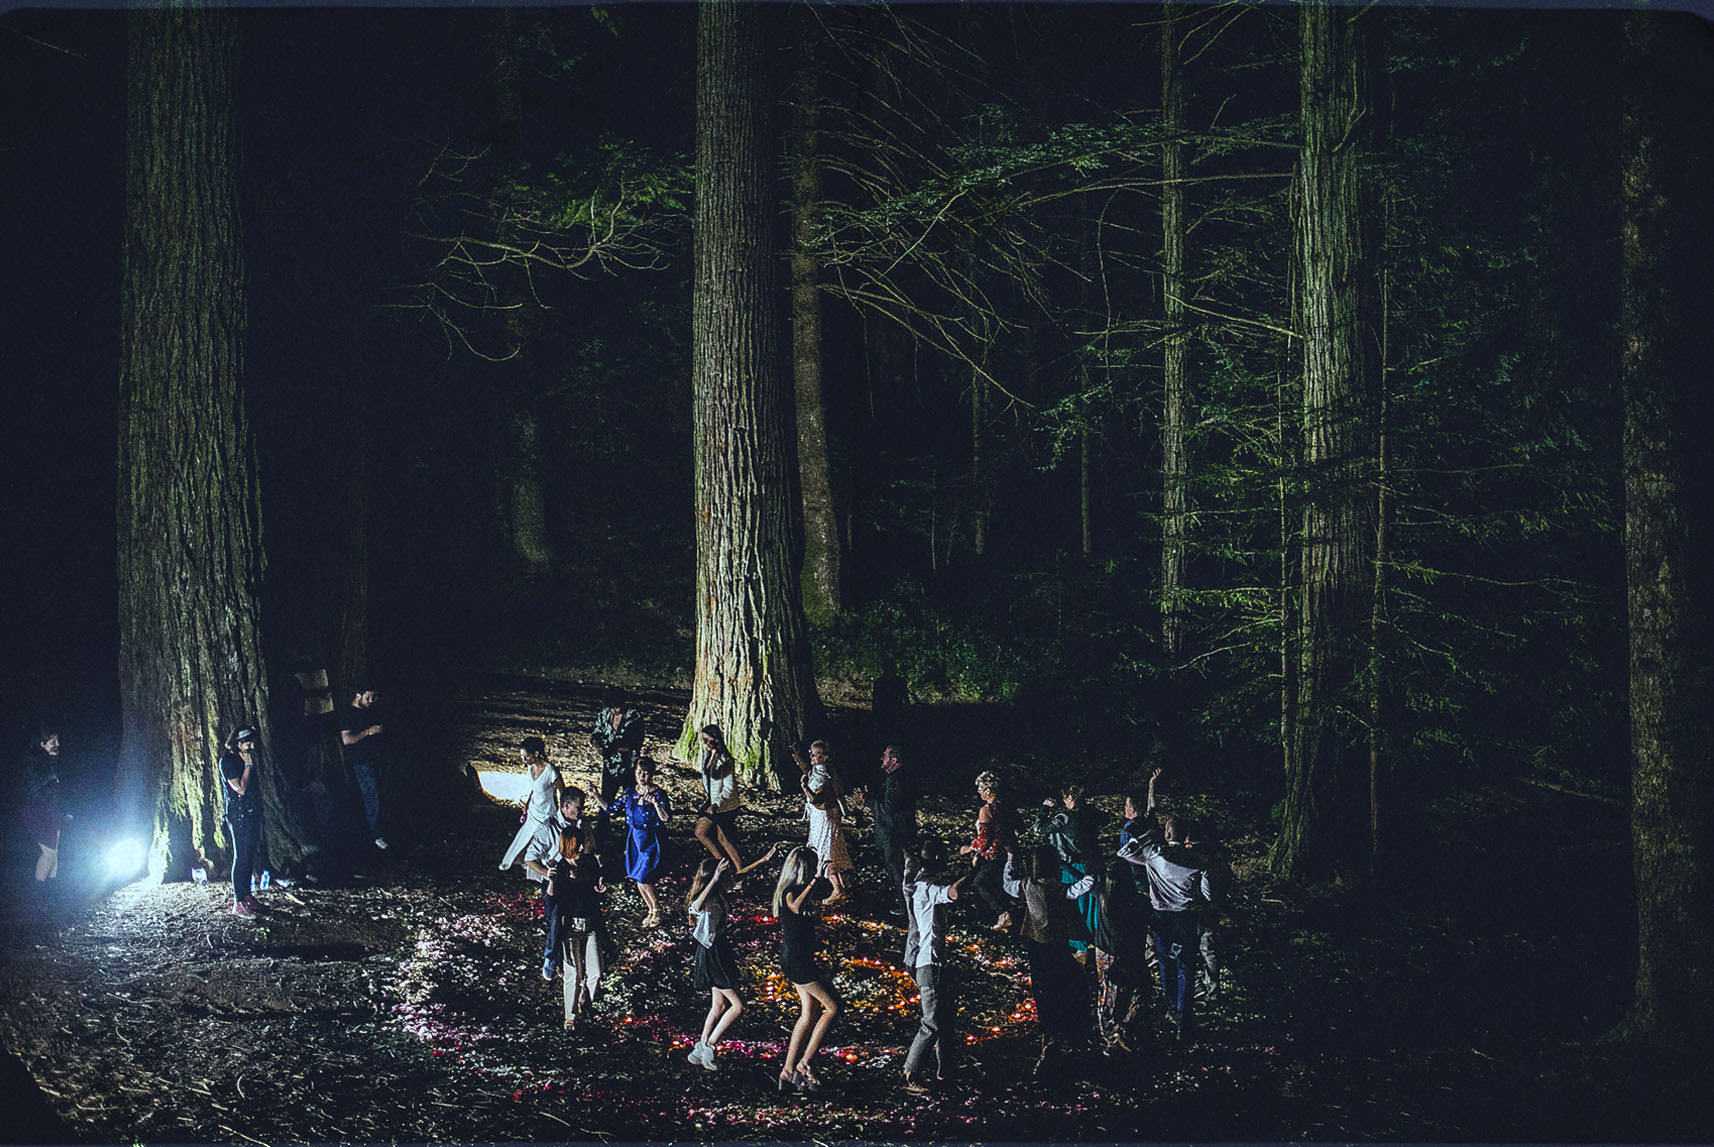 people dancing in between trees at night